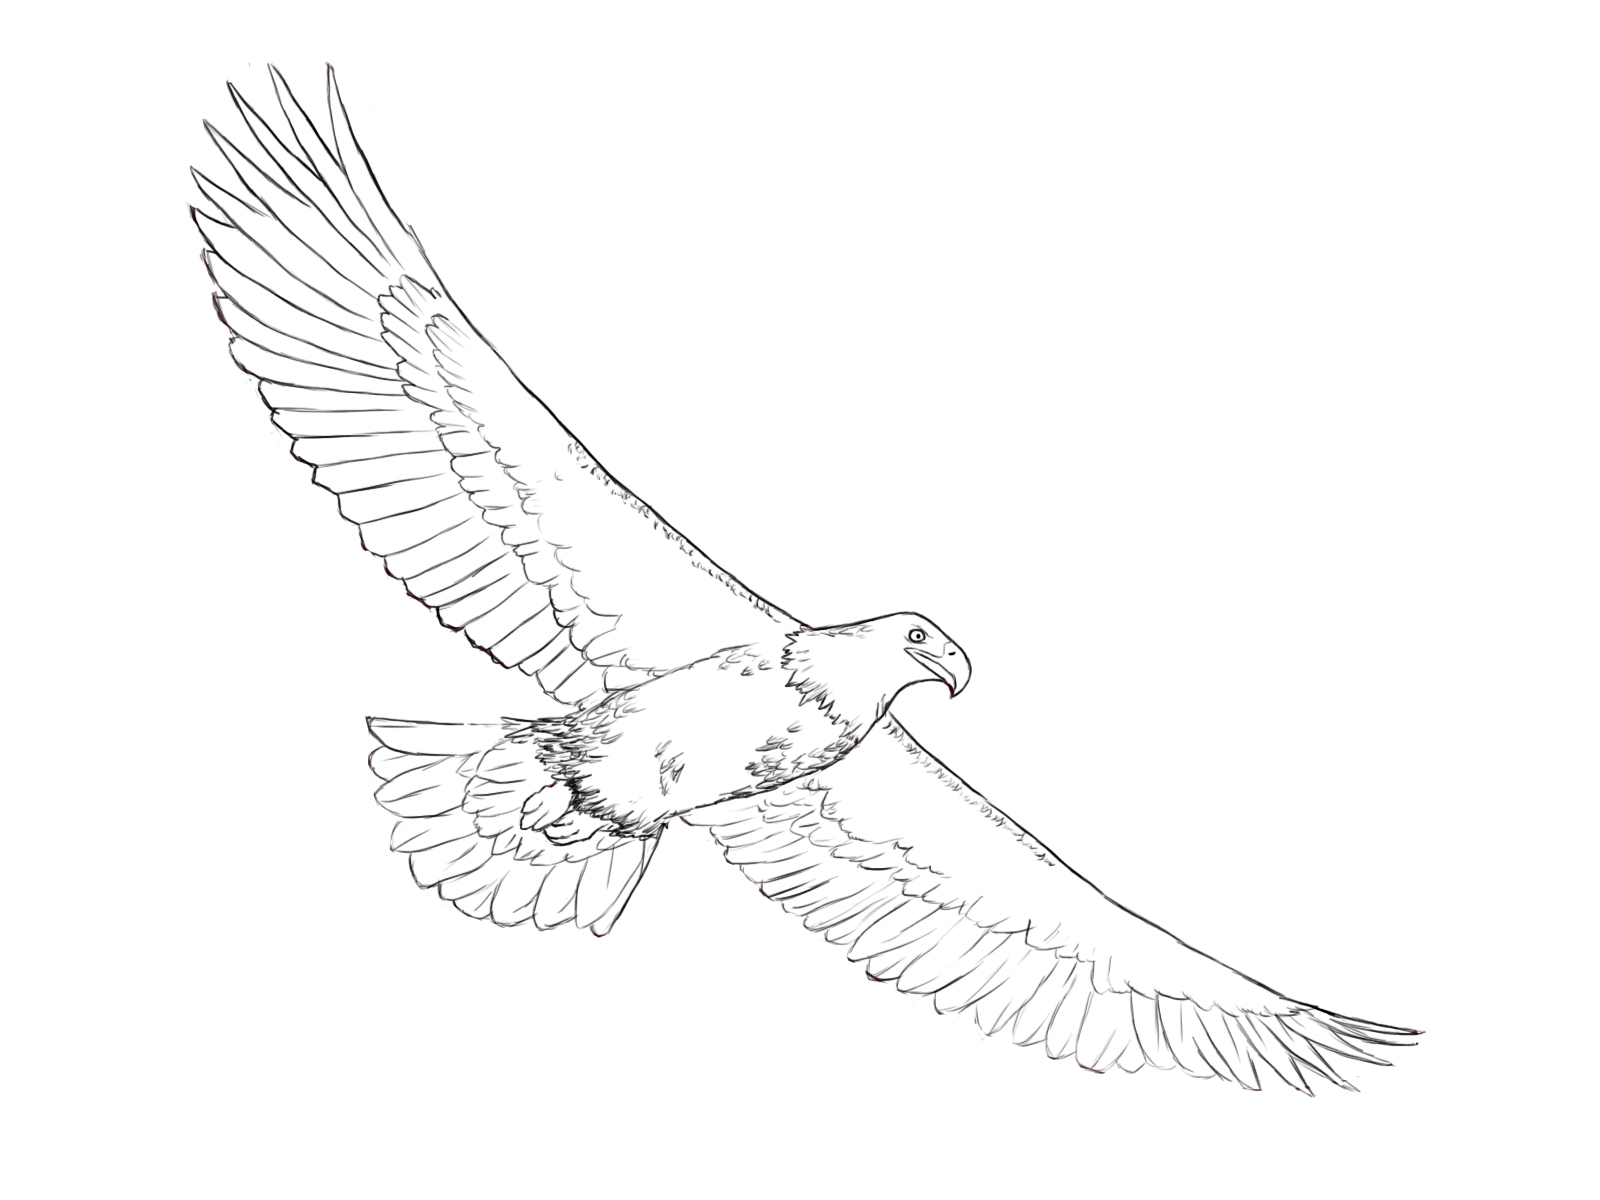 how to draw an eagle flying eagle drawing and how to draw eagle draw a flying eagle an flying how eagle to draw